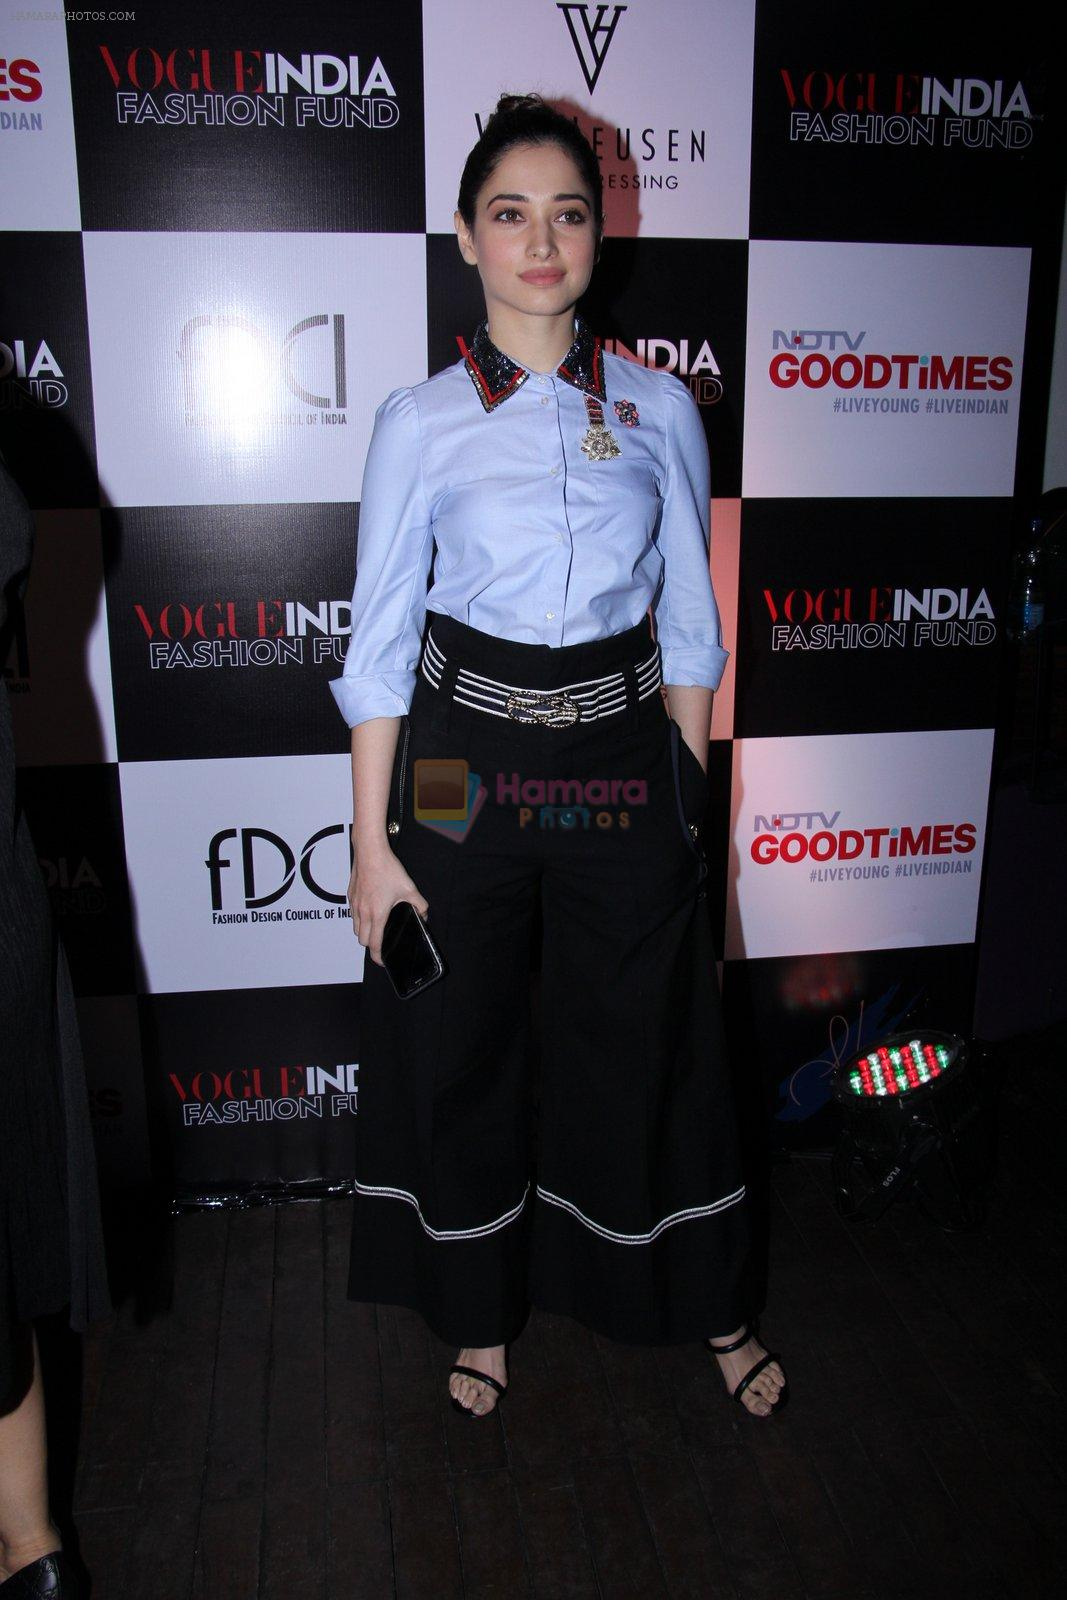 Tamannaah Bhatia at Vogue India Fashion Fund Event on 29th Nov 2016